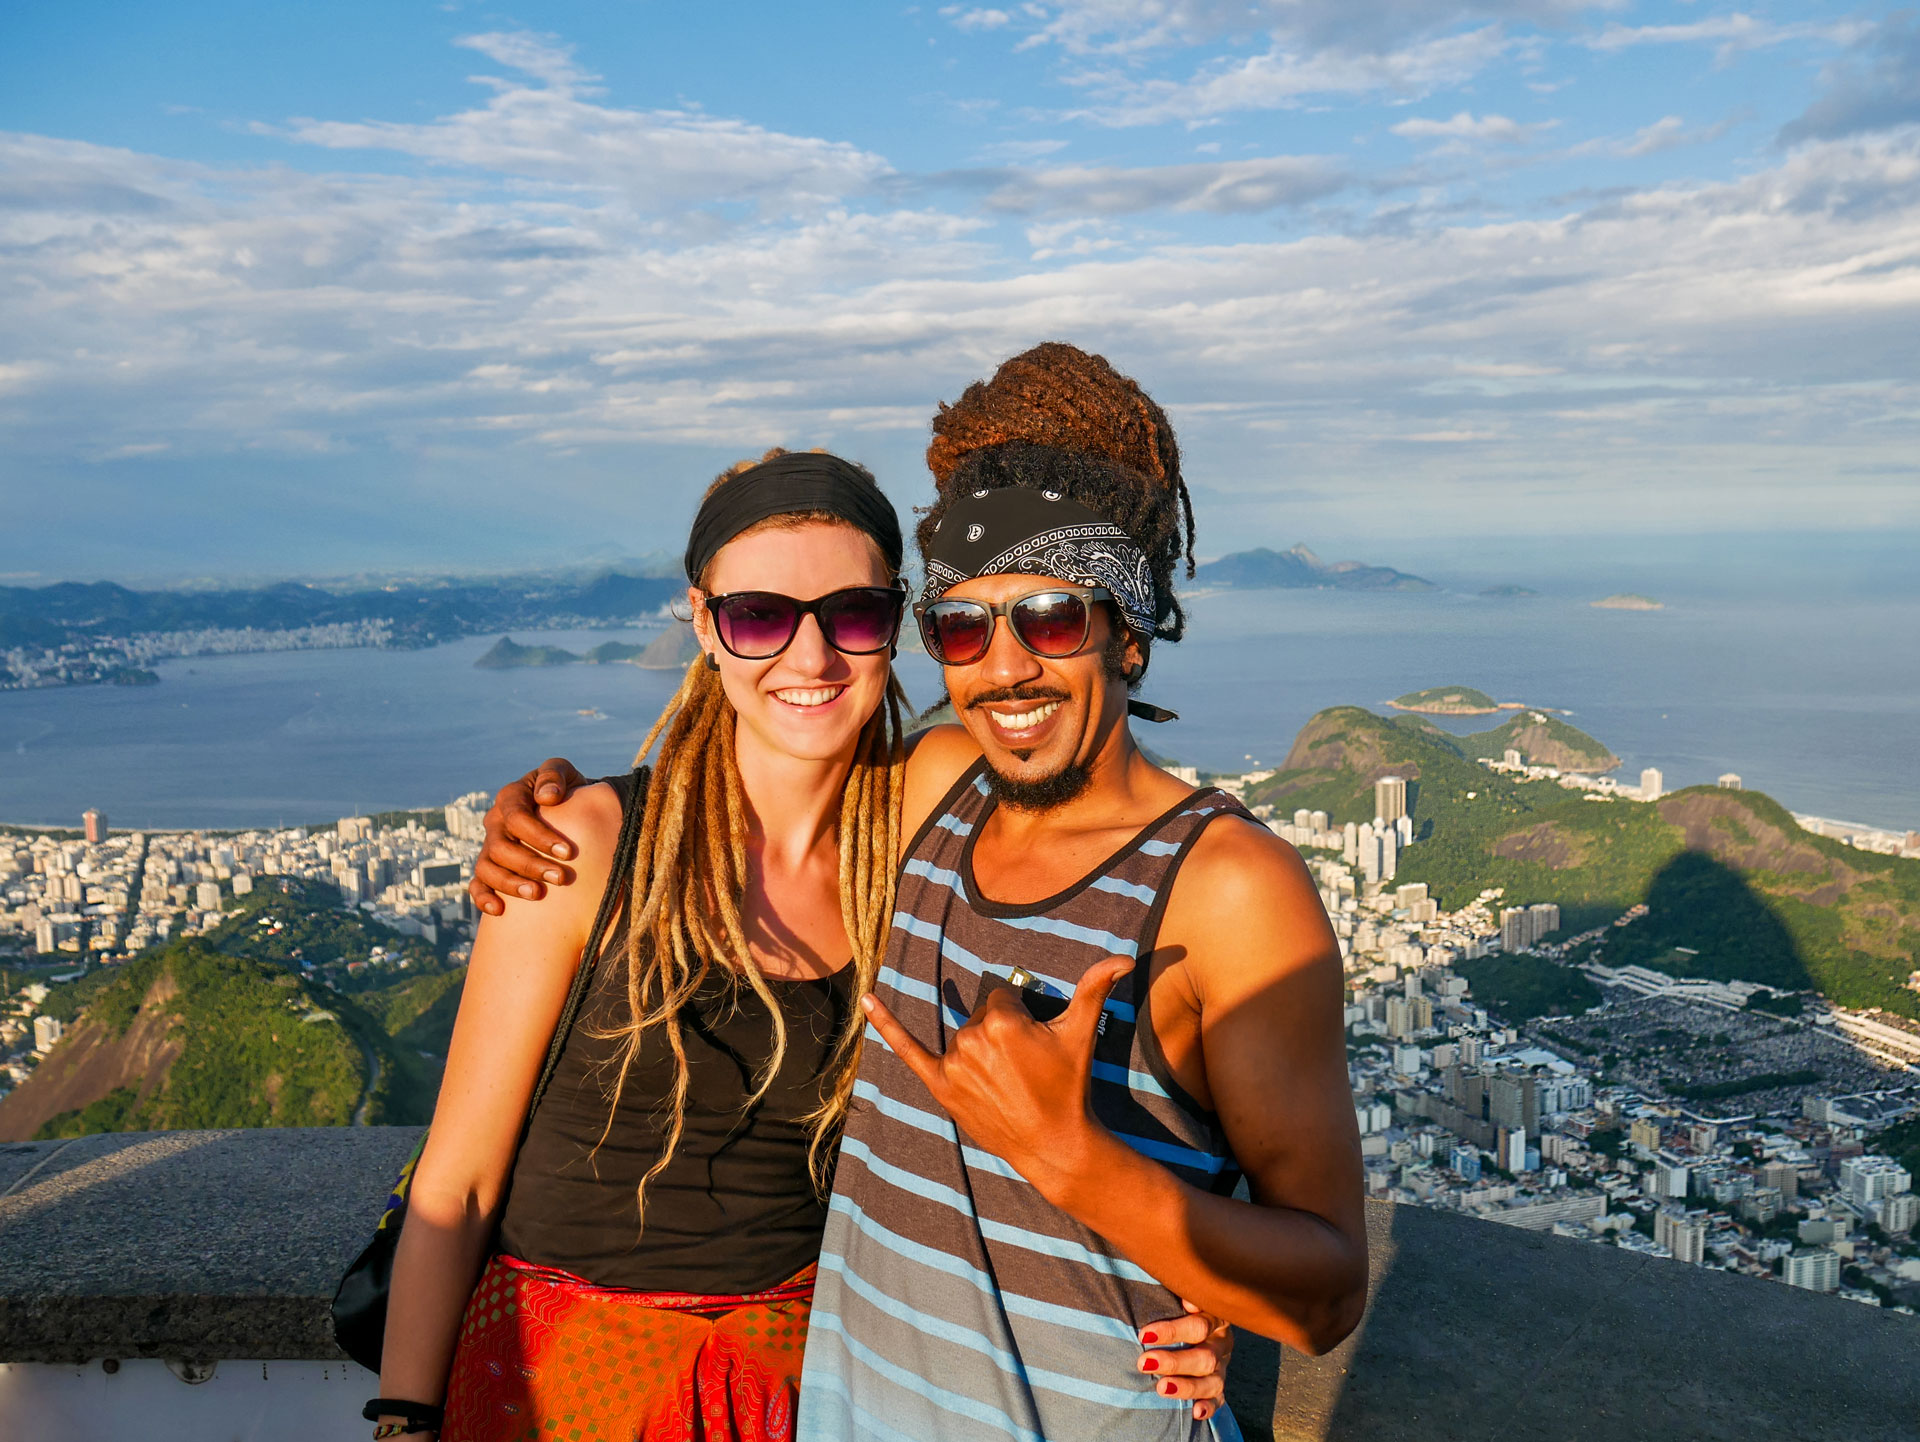 Rasta couple overlooking city and bay from Christ statue in Rio de Janeiro, Brazil